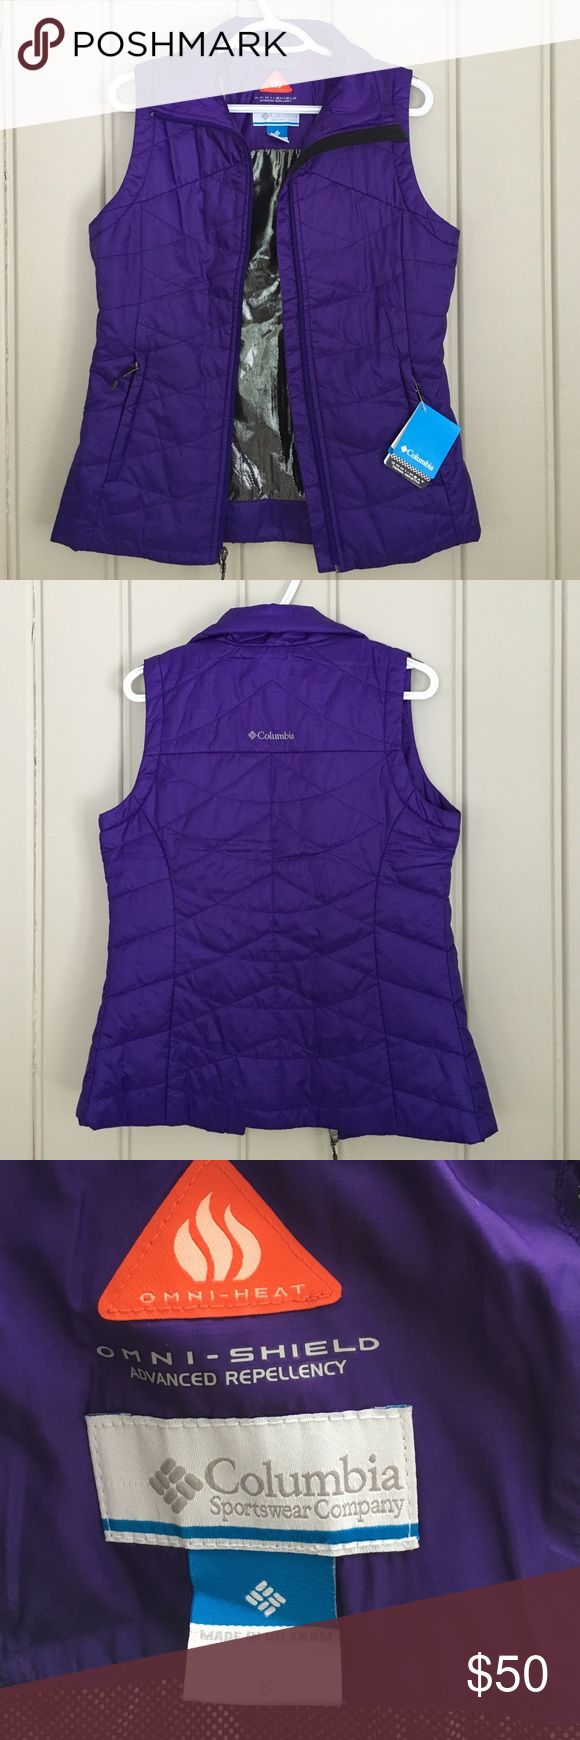 Columbia Omni-heat vest Great purple color, never worn and in perfect condition. This vest would be perfect for cold days as well as adding a great layer to an outfit! Columbia Jackets & Coats Vests